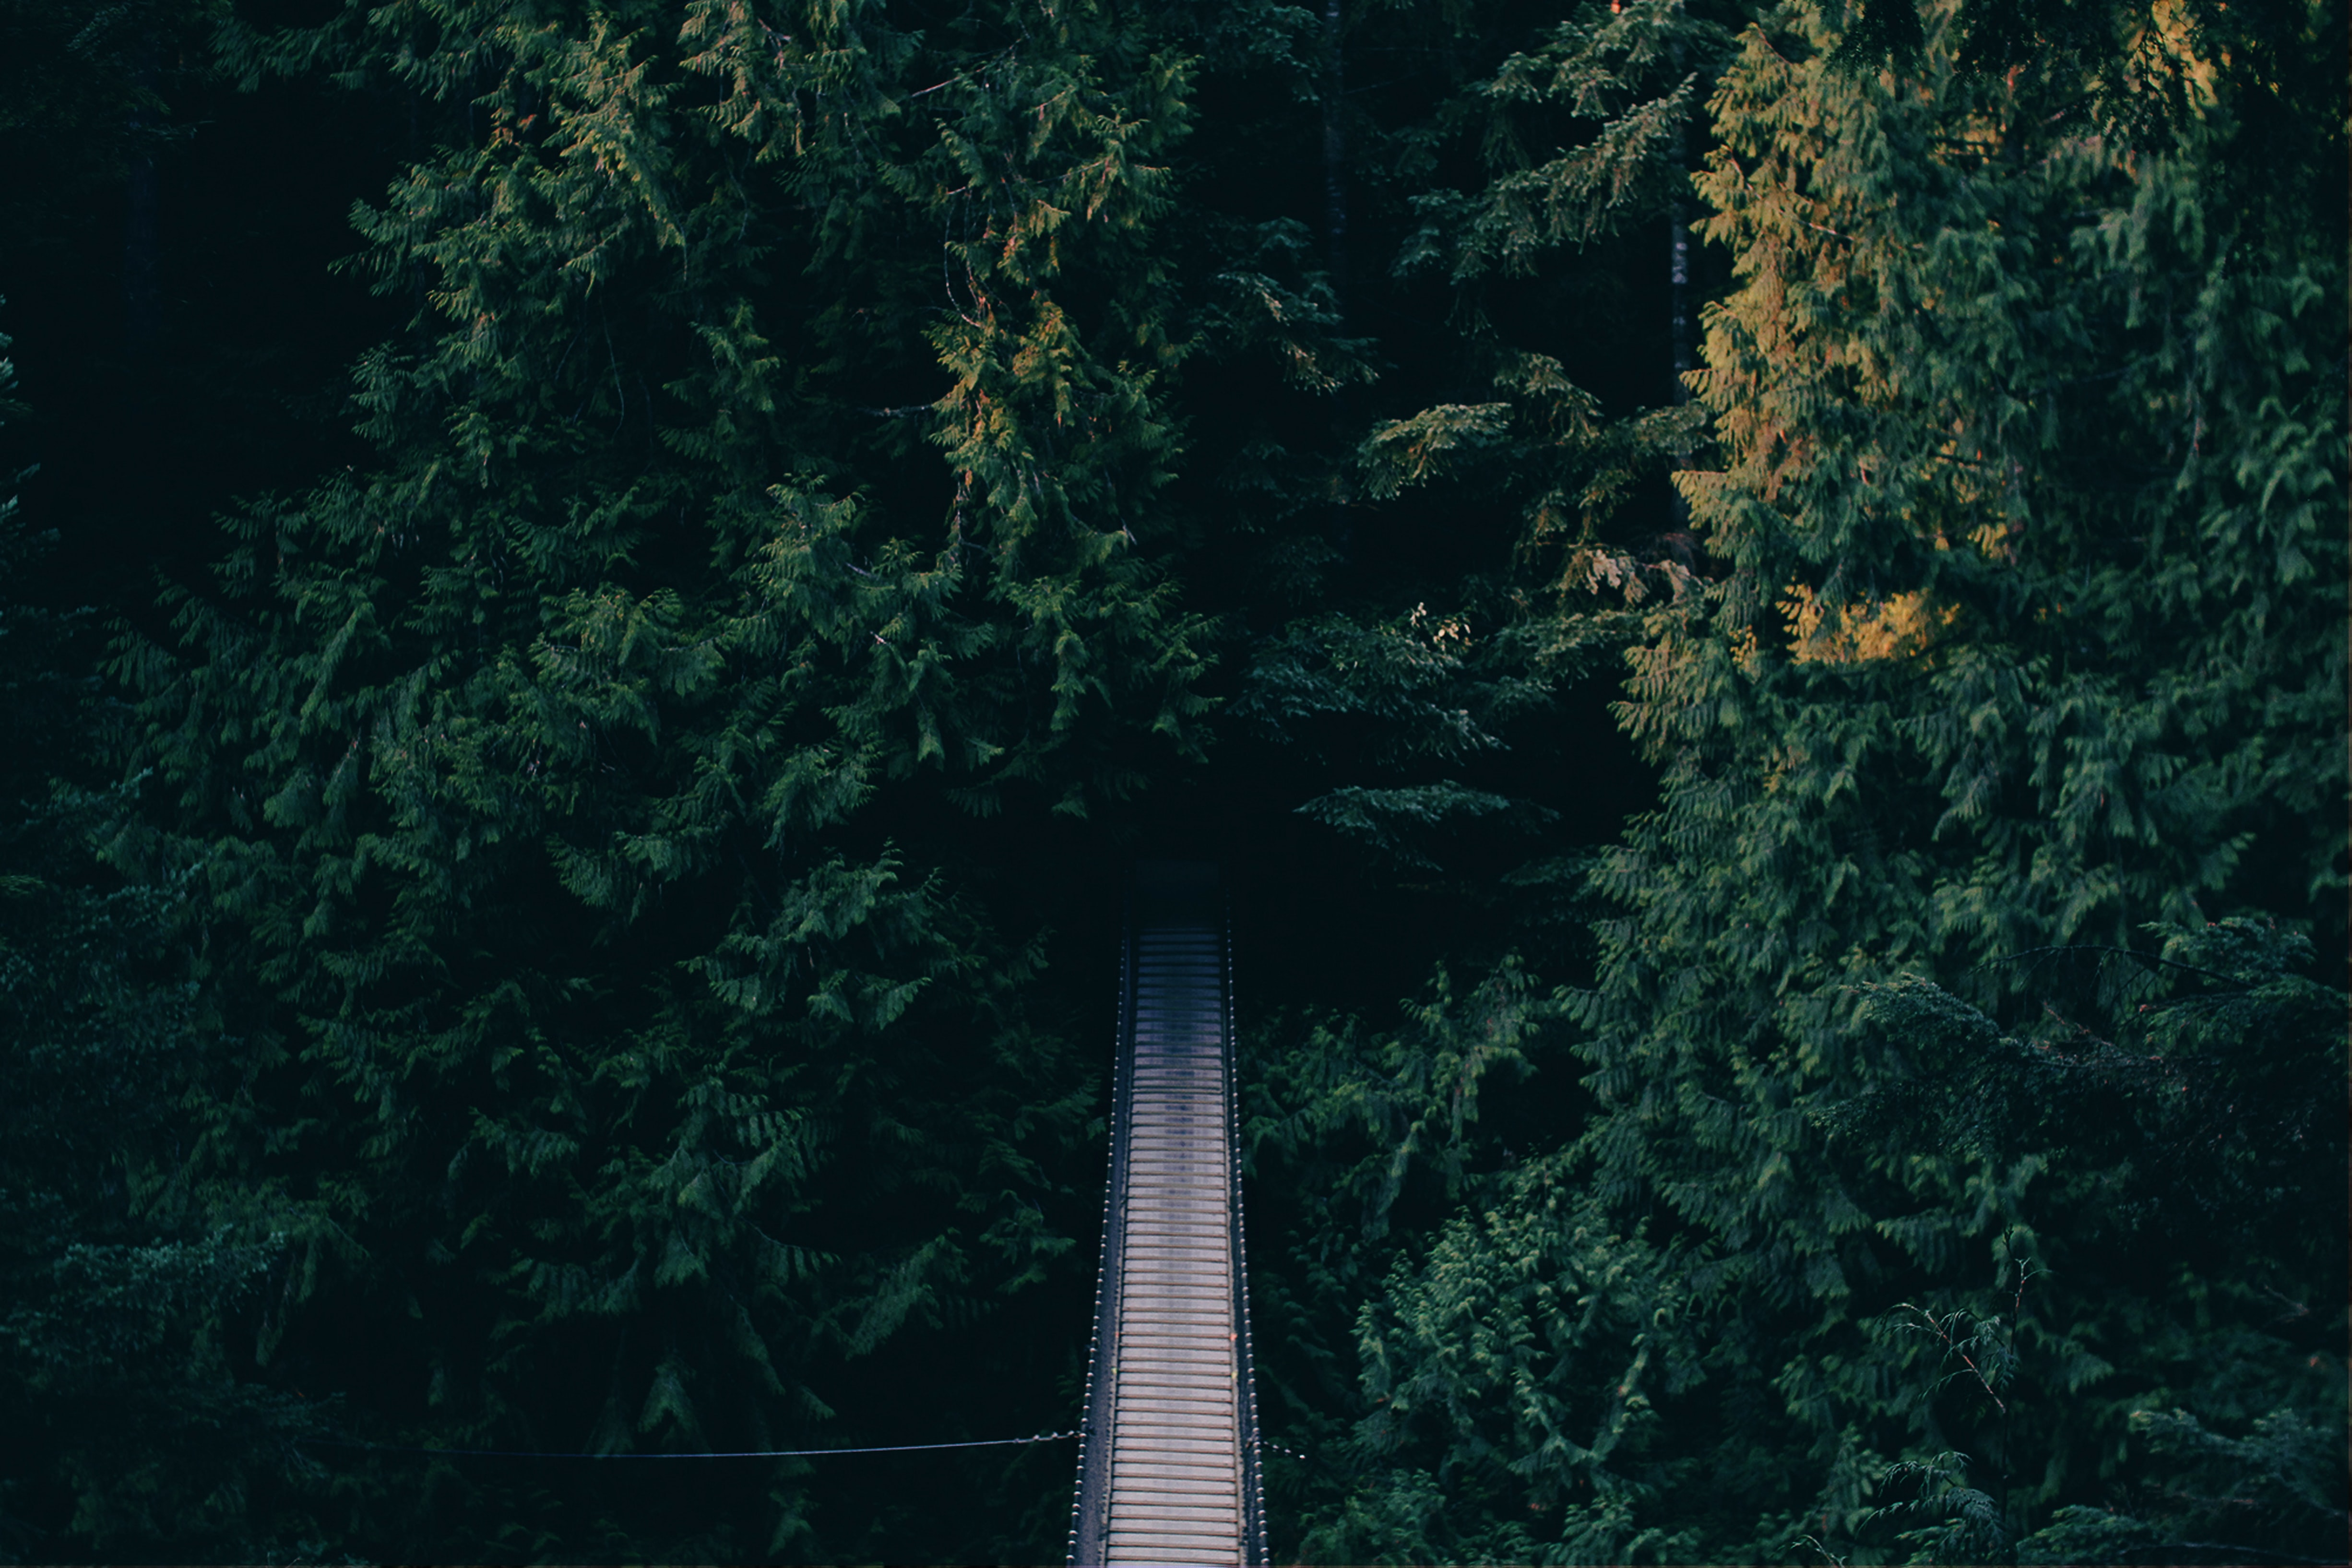 A wooden suspension bridge leading into a dense forest